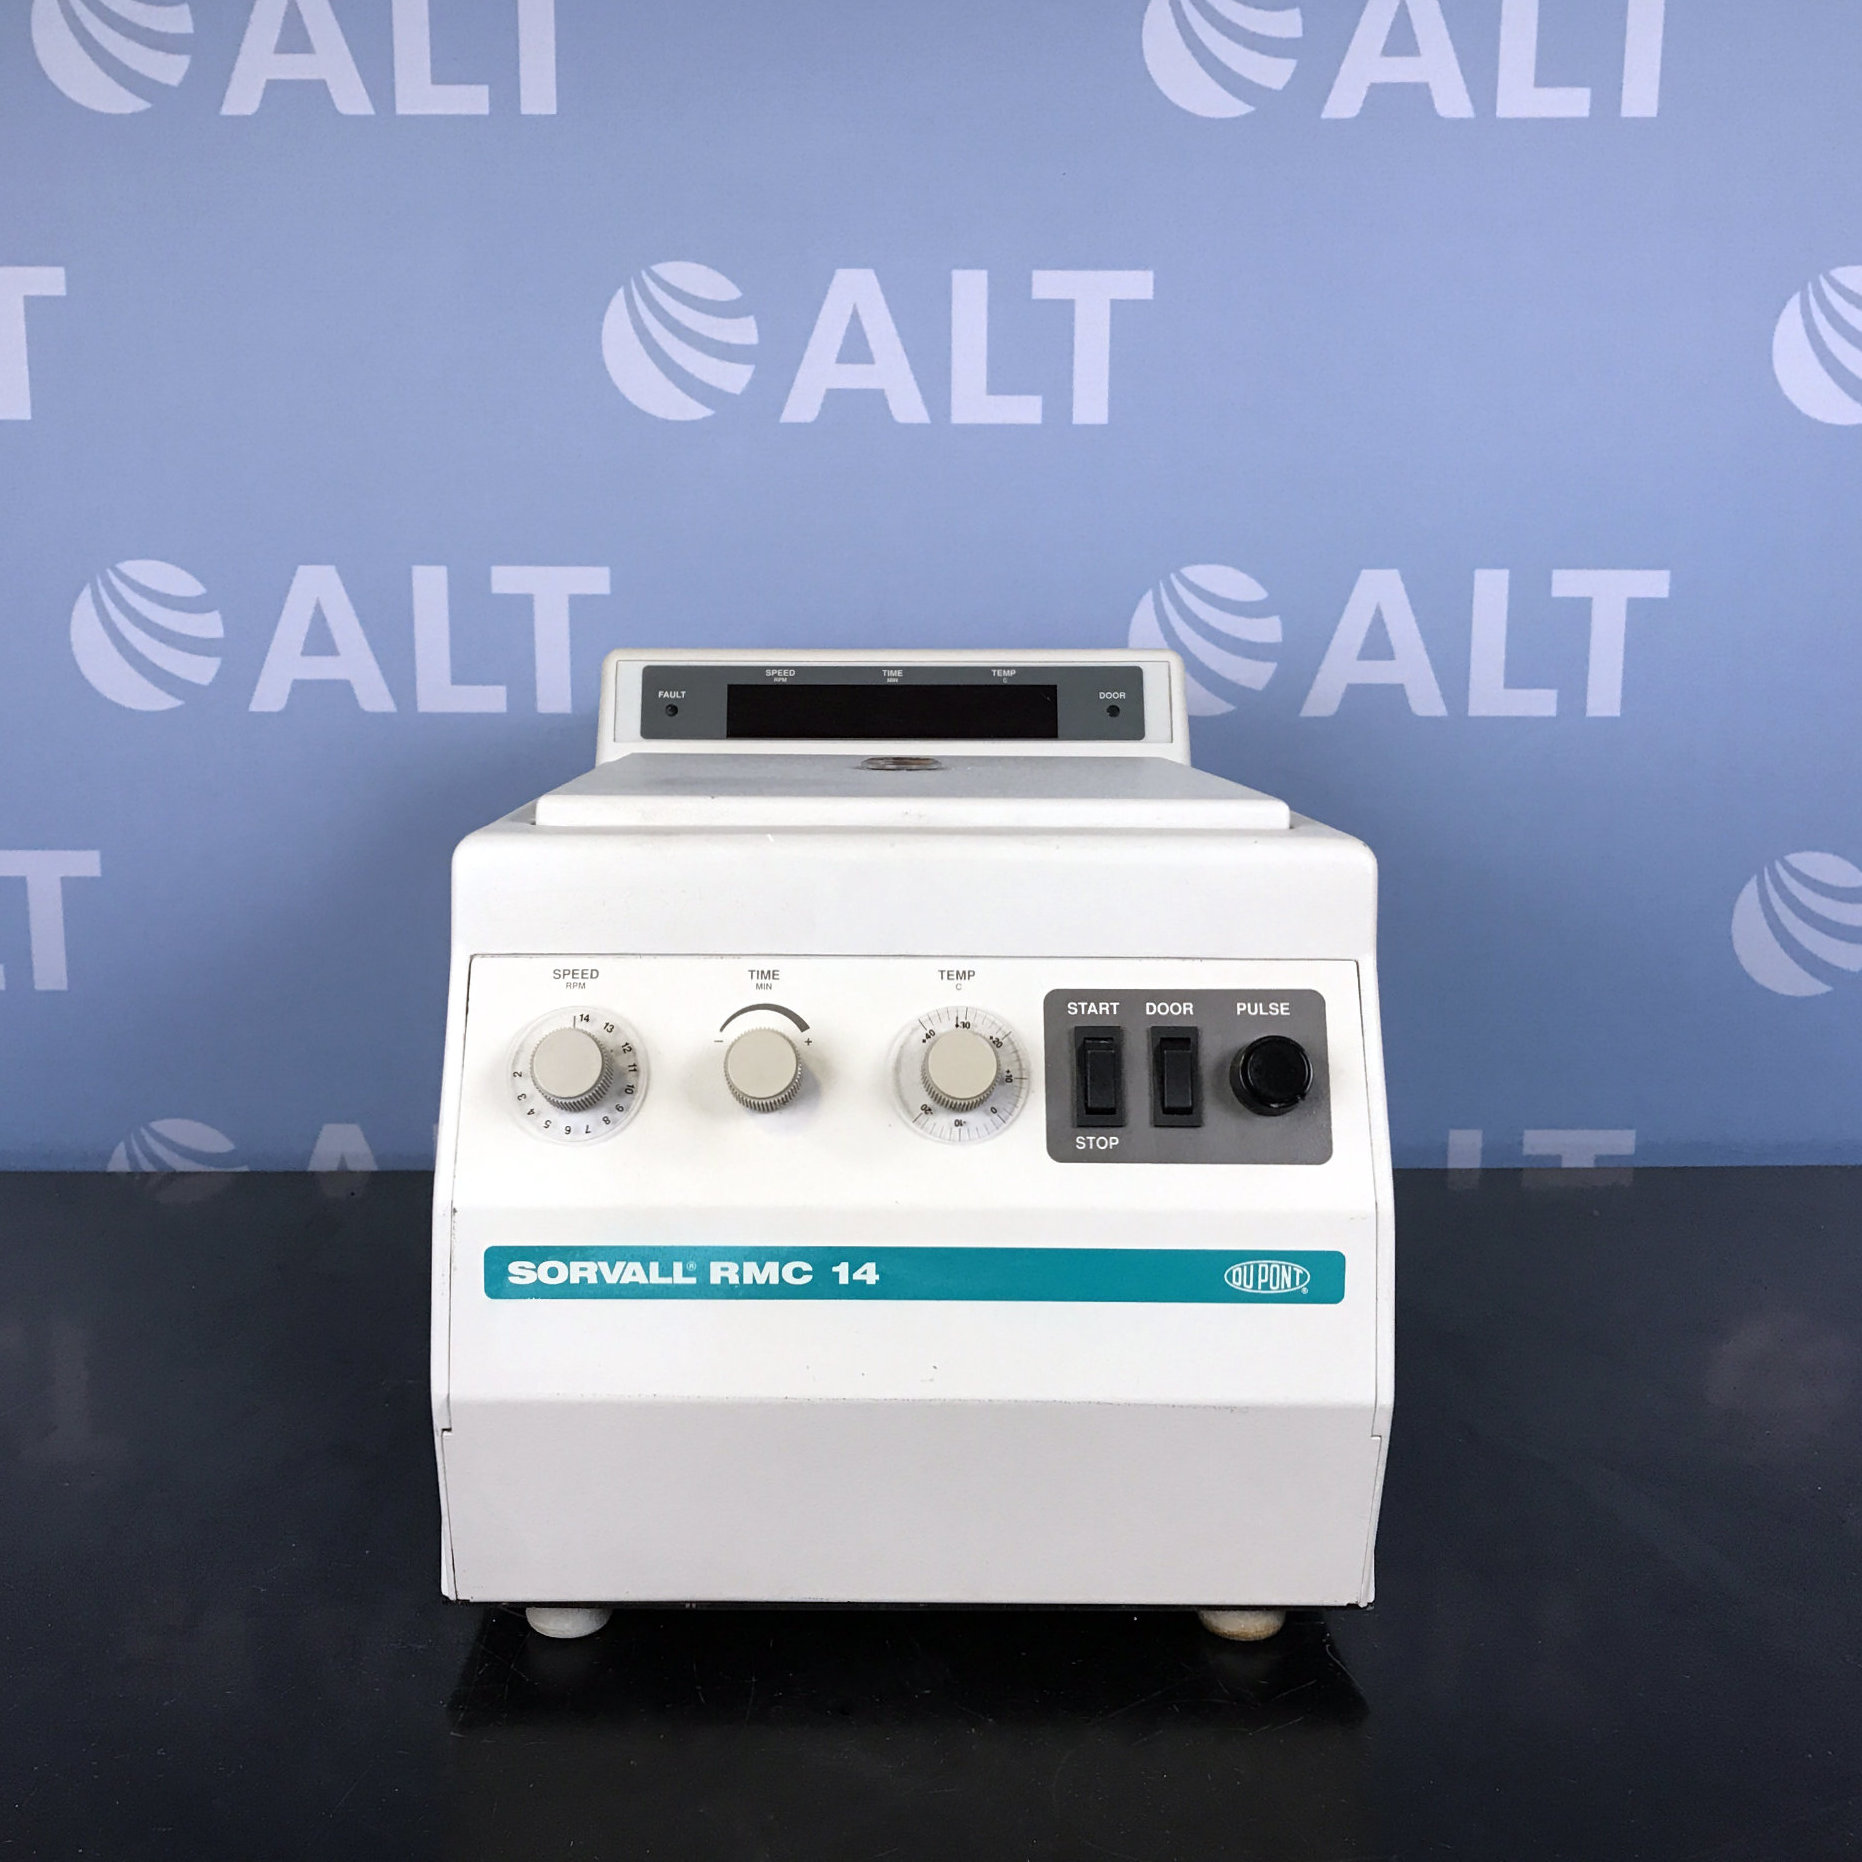 Sorvall/Dupont RMC-14 Refrigerated Micro-Centrifuge Image